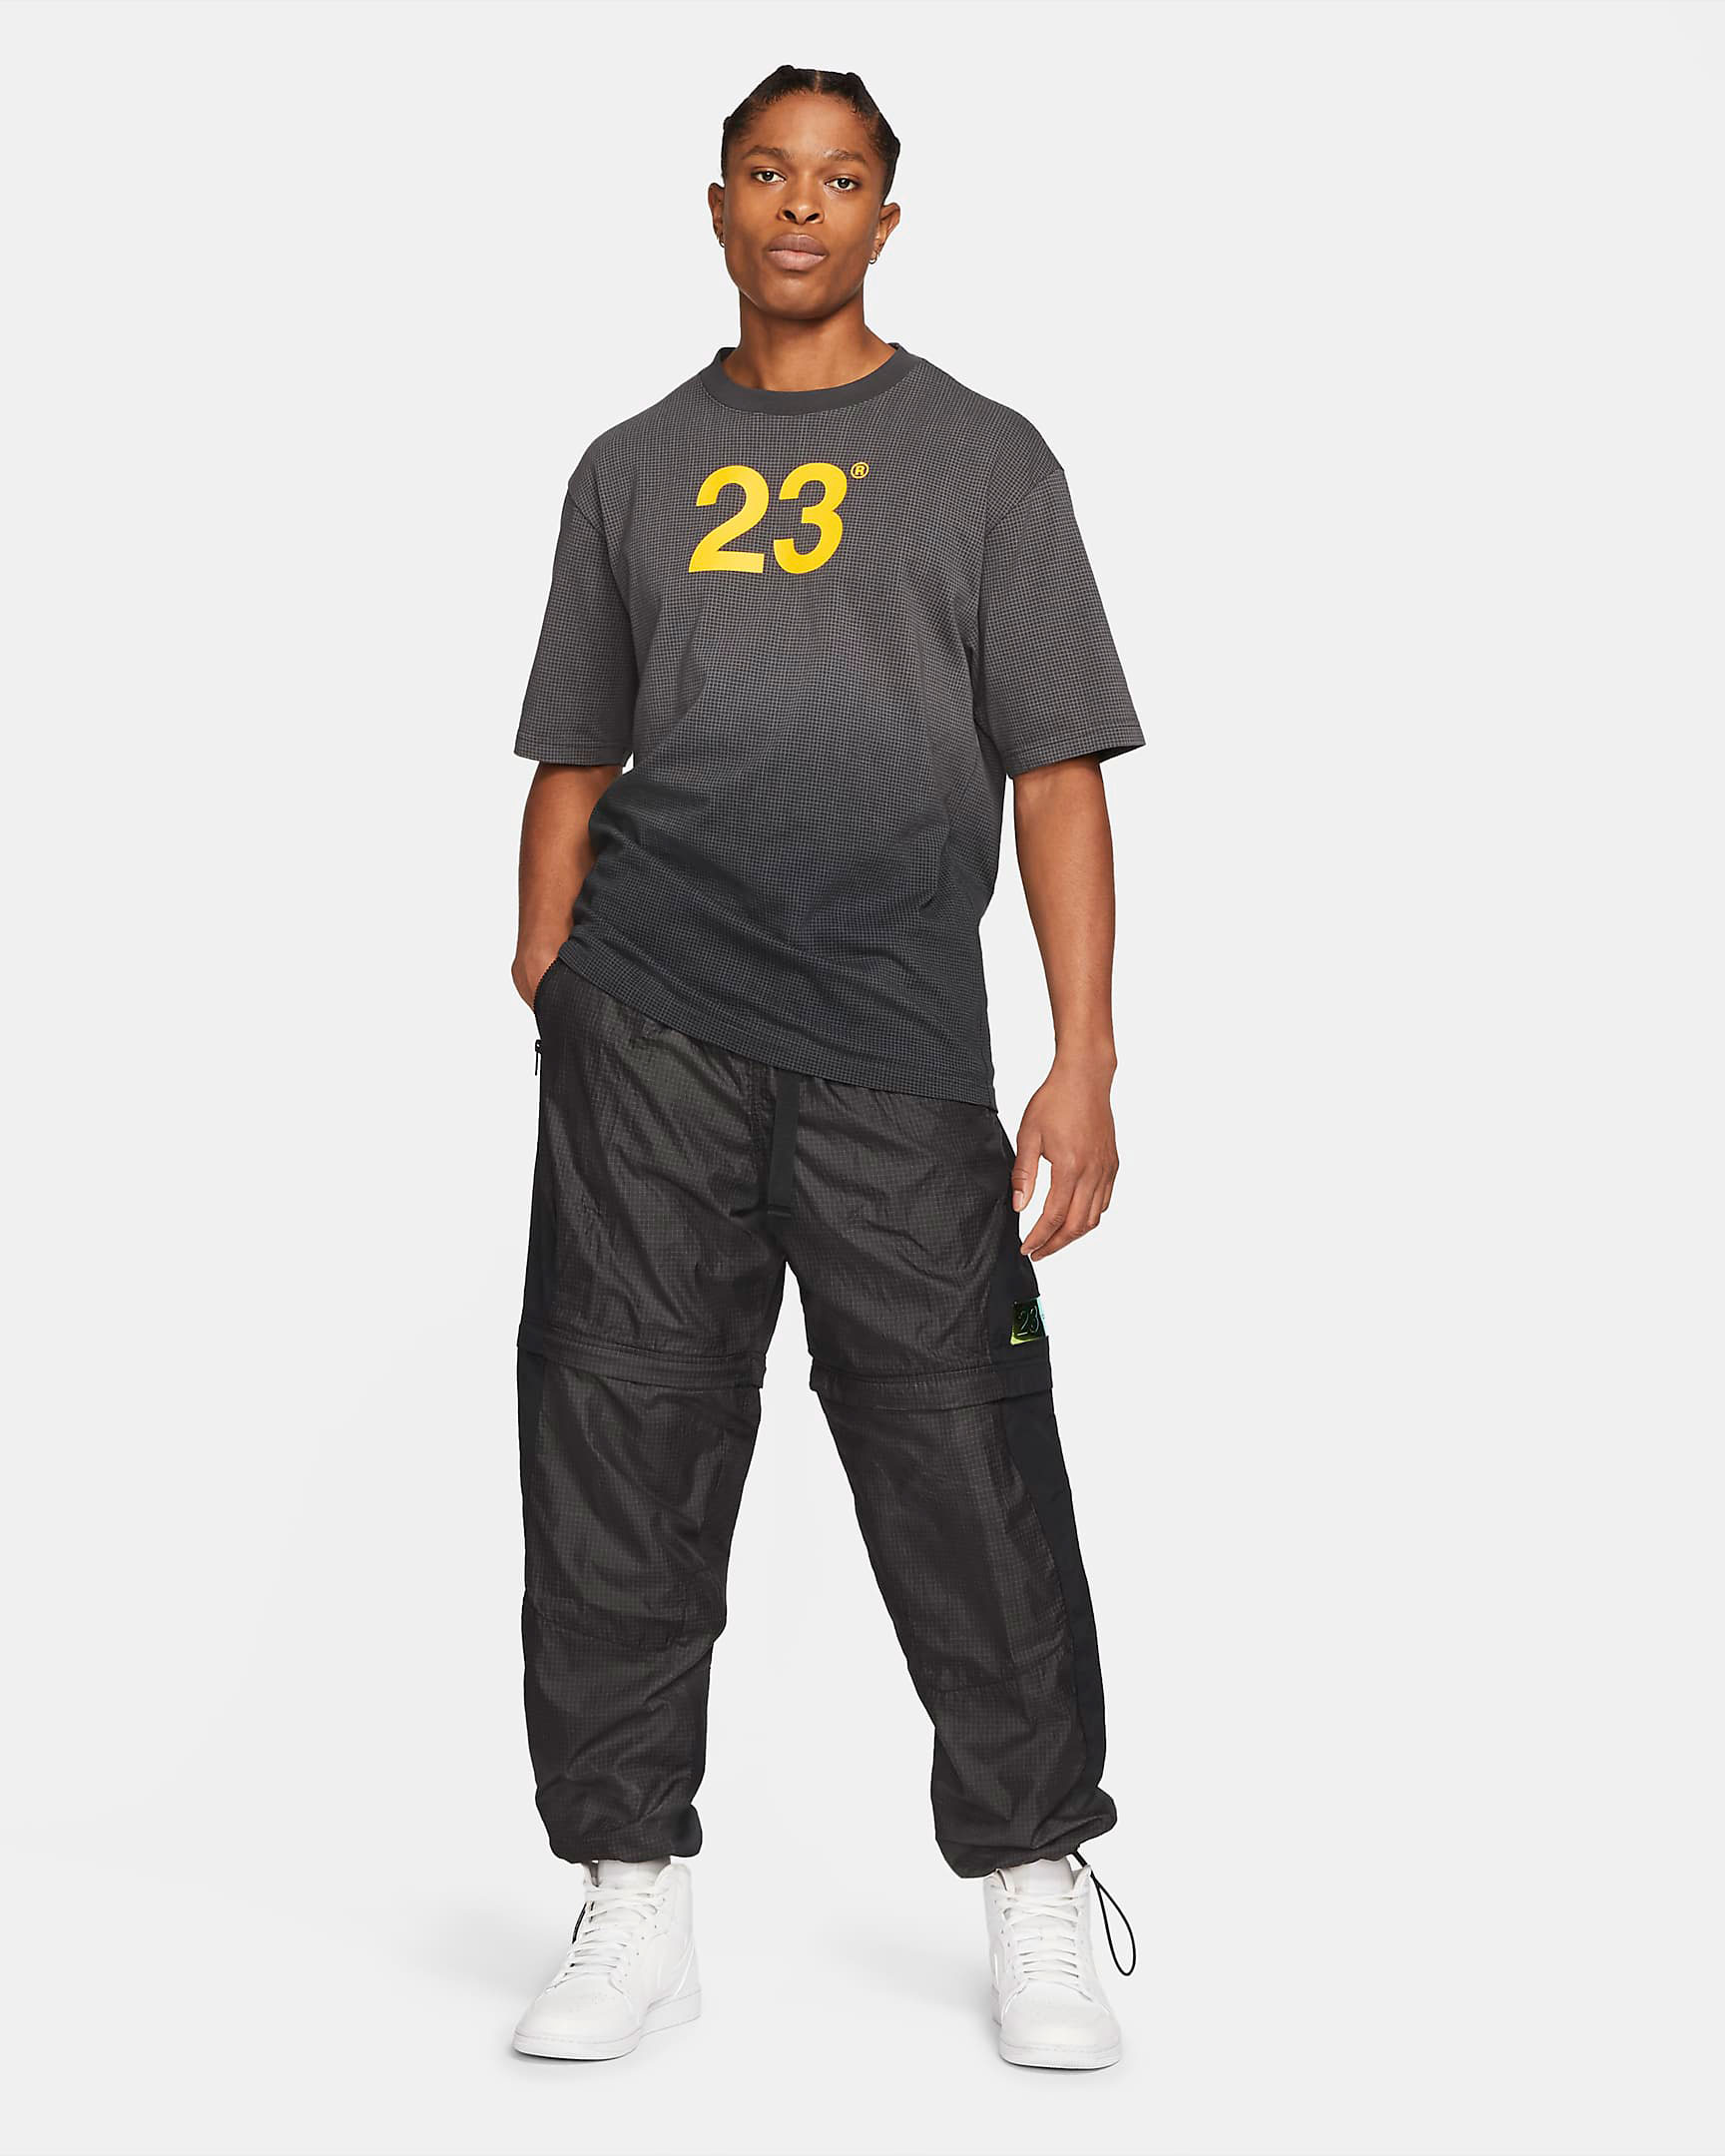 jordan-9-university-gold-shirt-pants-outfit